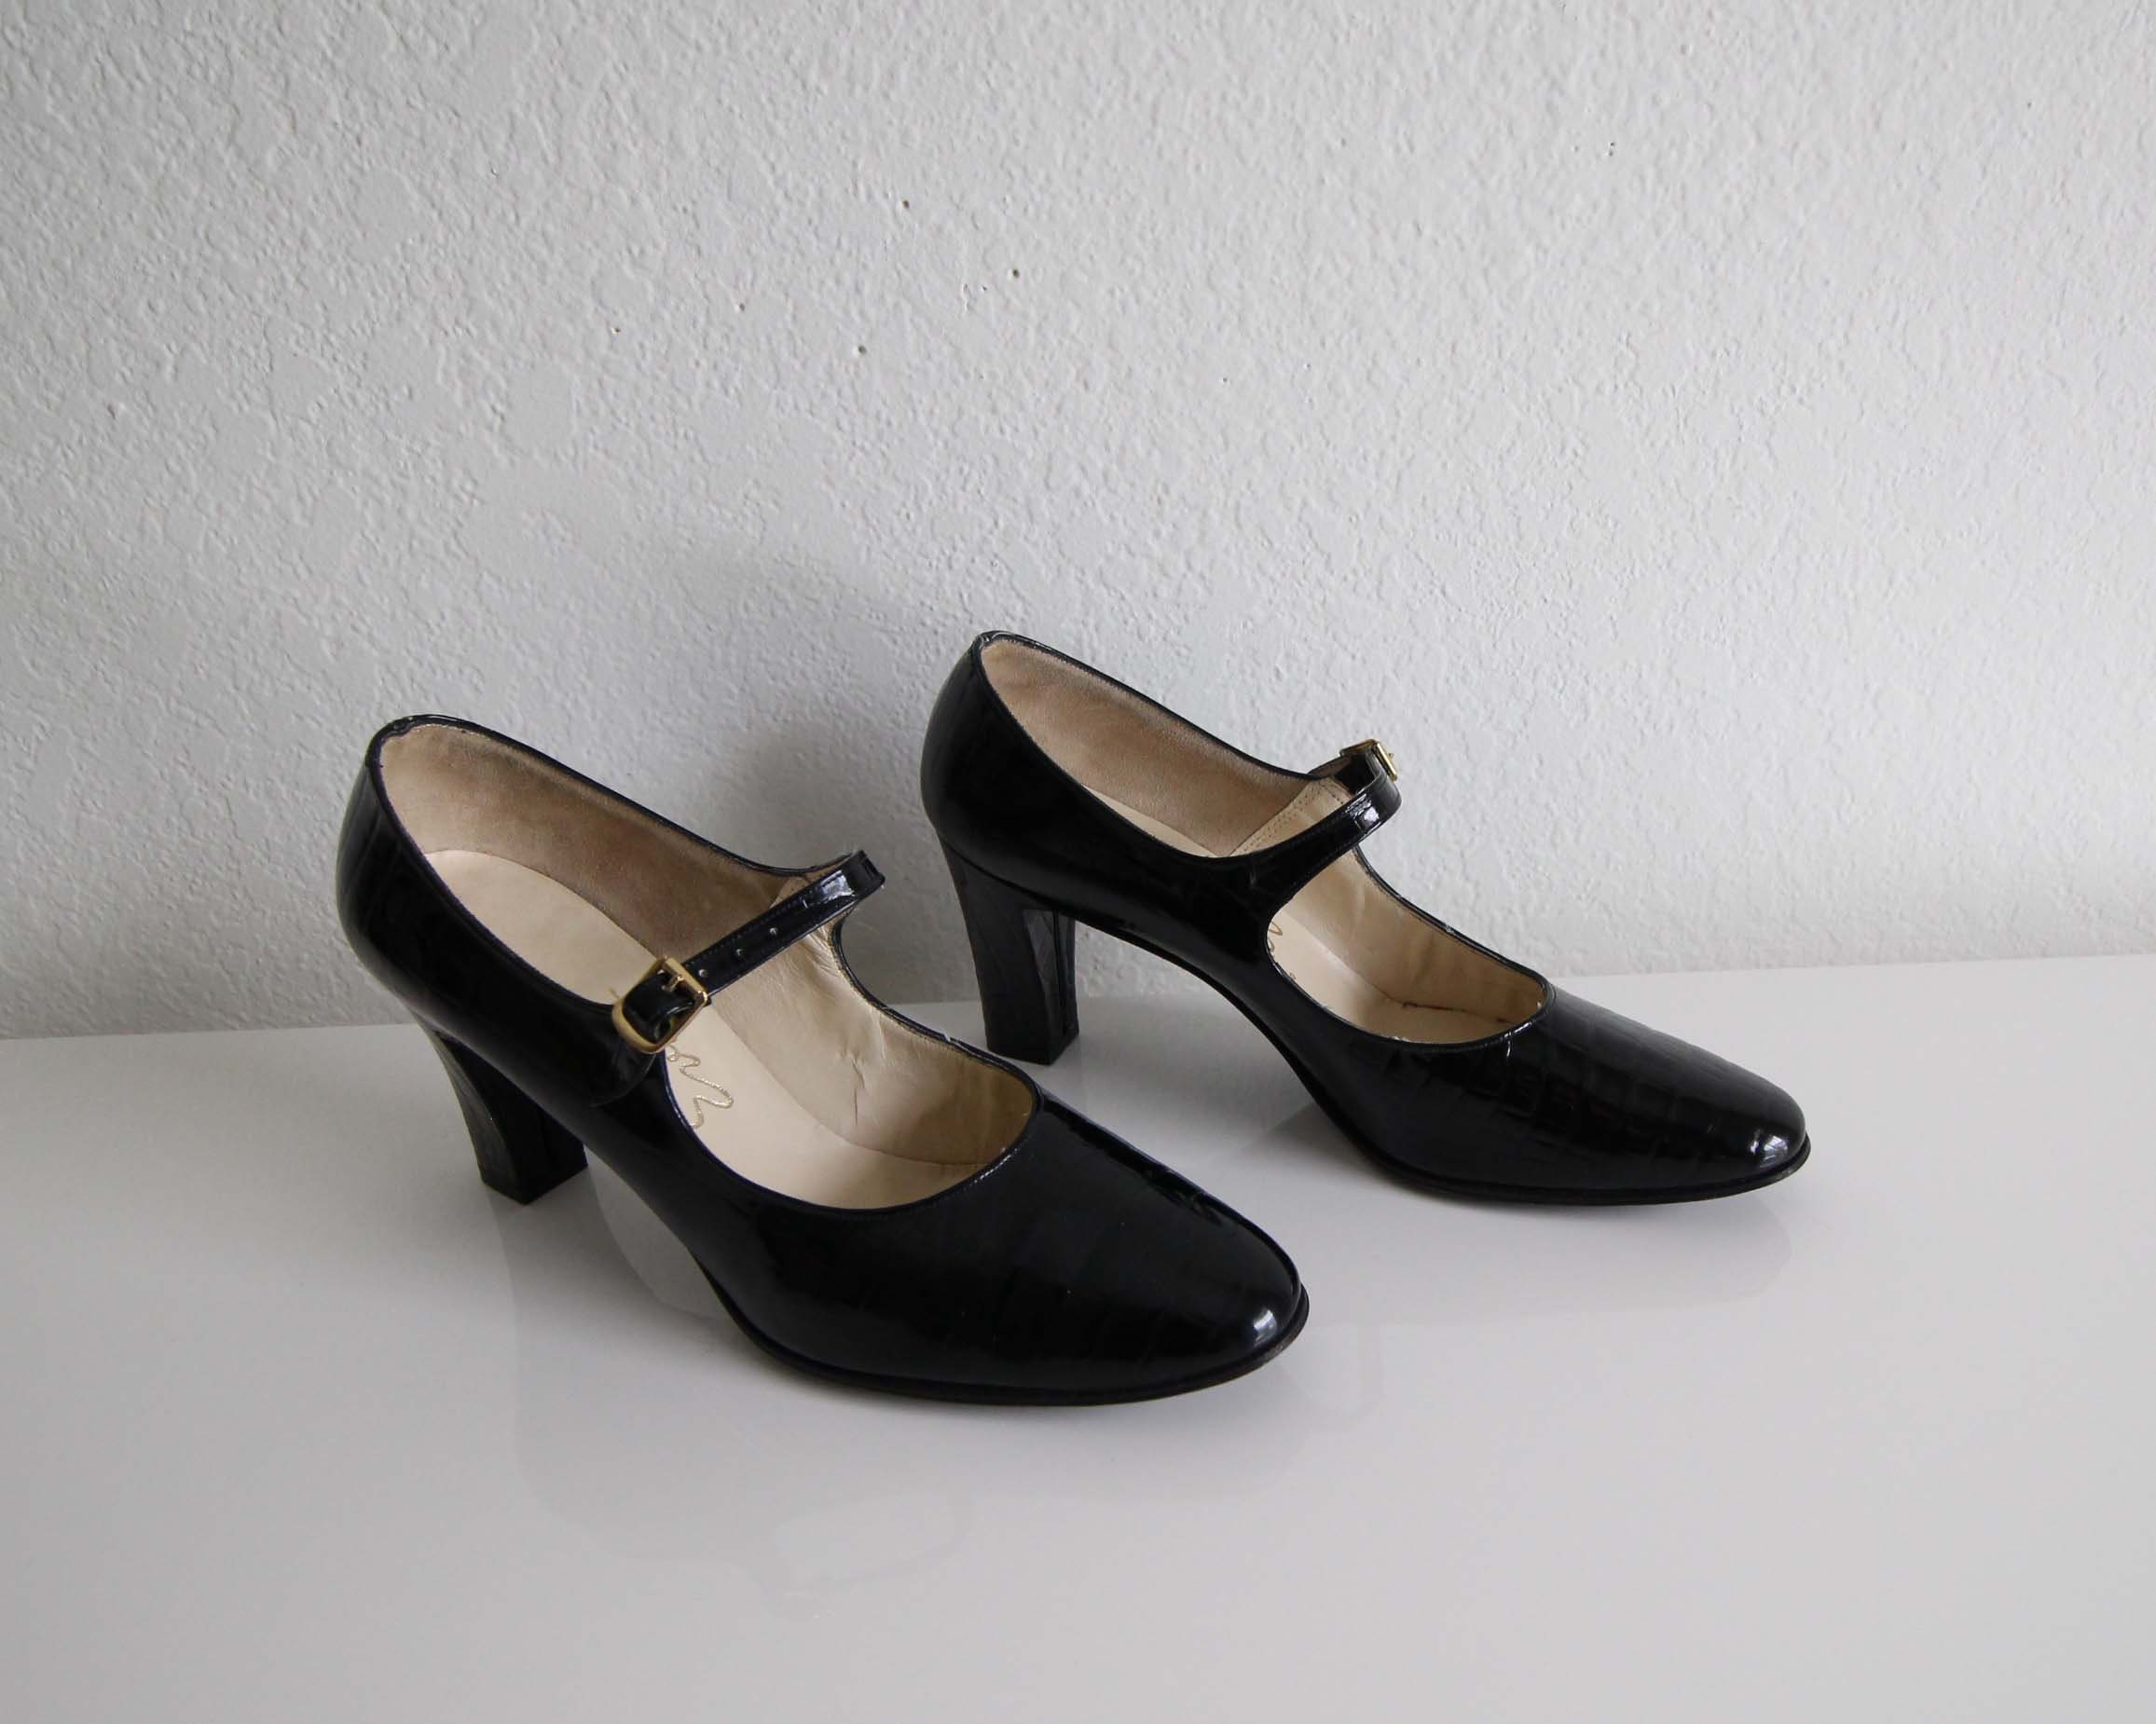 b12d8338455 Vintage Mary Janes Womens Shoes Black Patent Leather Heels